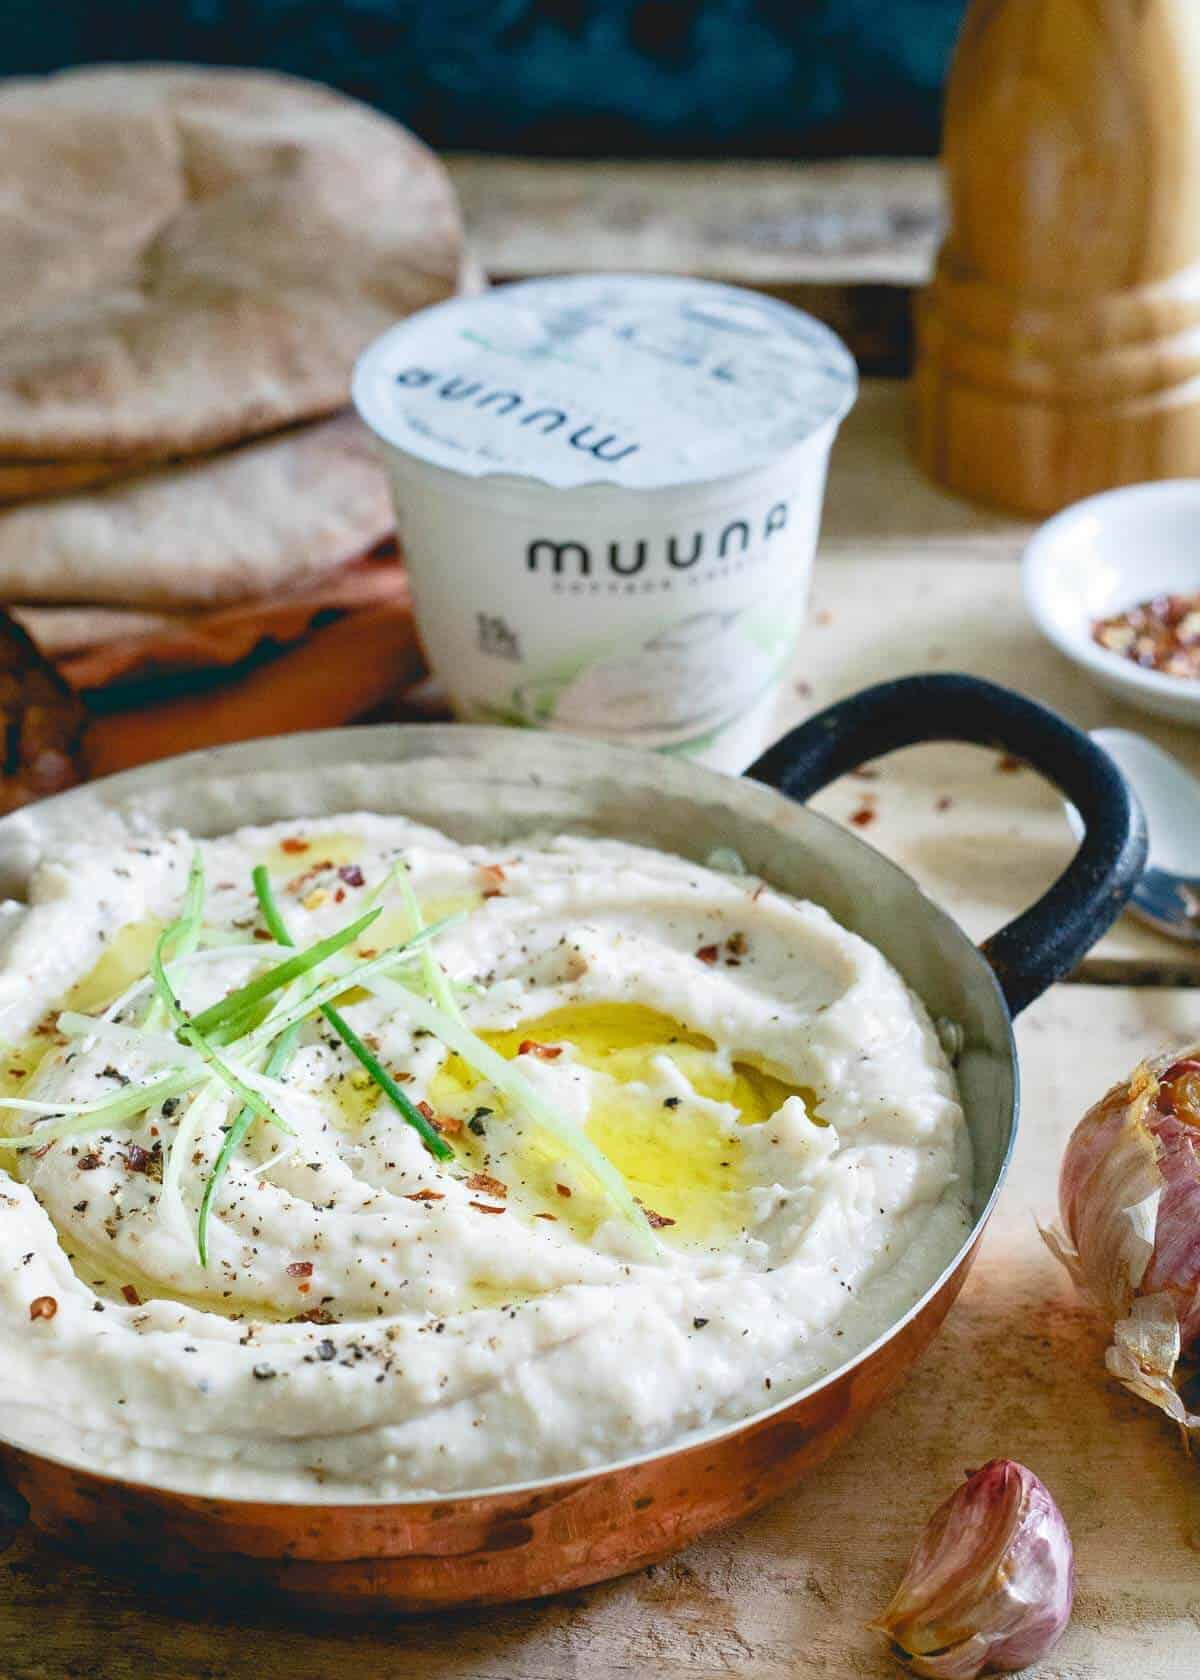 This roasted garlic white bean dip has a secret ingredient: cottage cheese! It lends a super creamy texture and healthy protein boost to each bite.